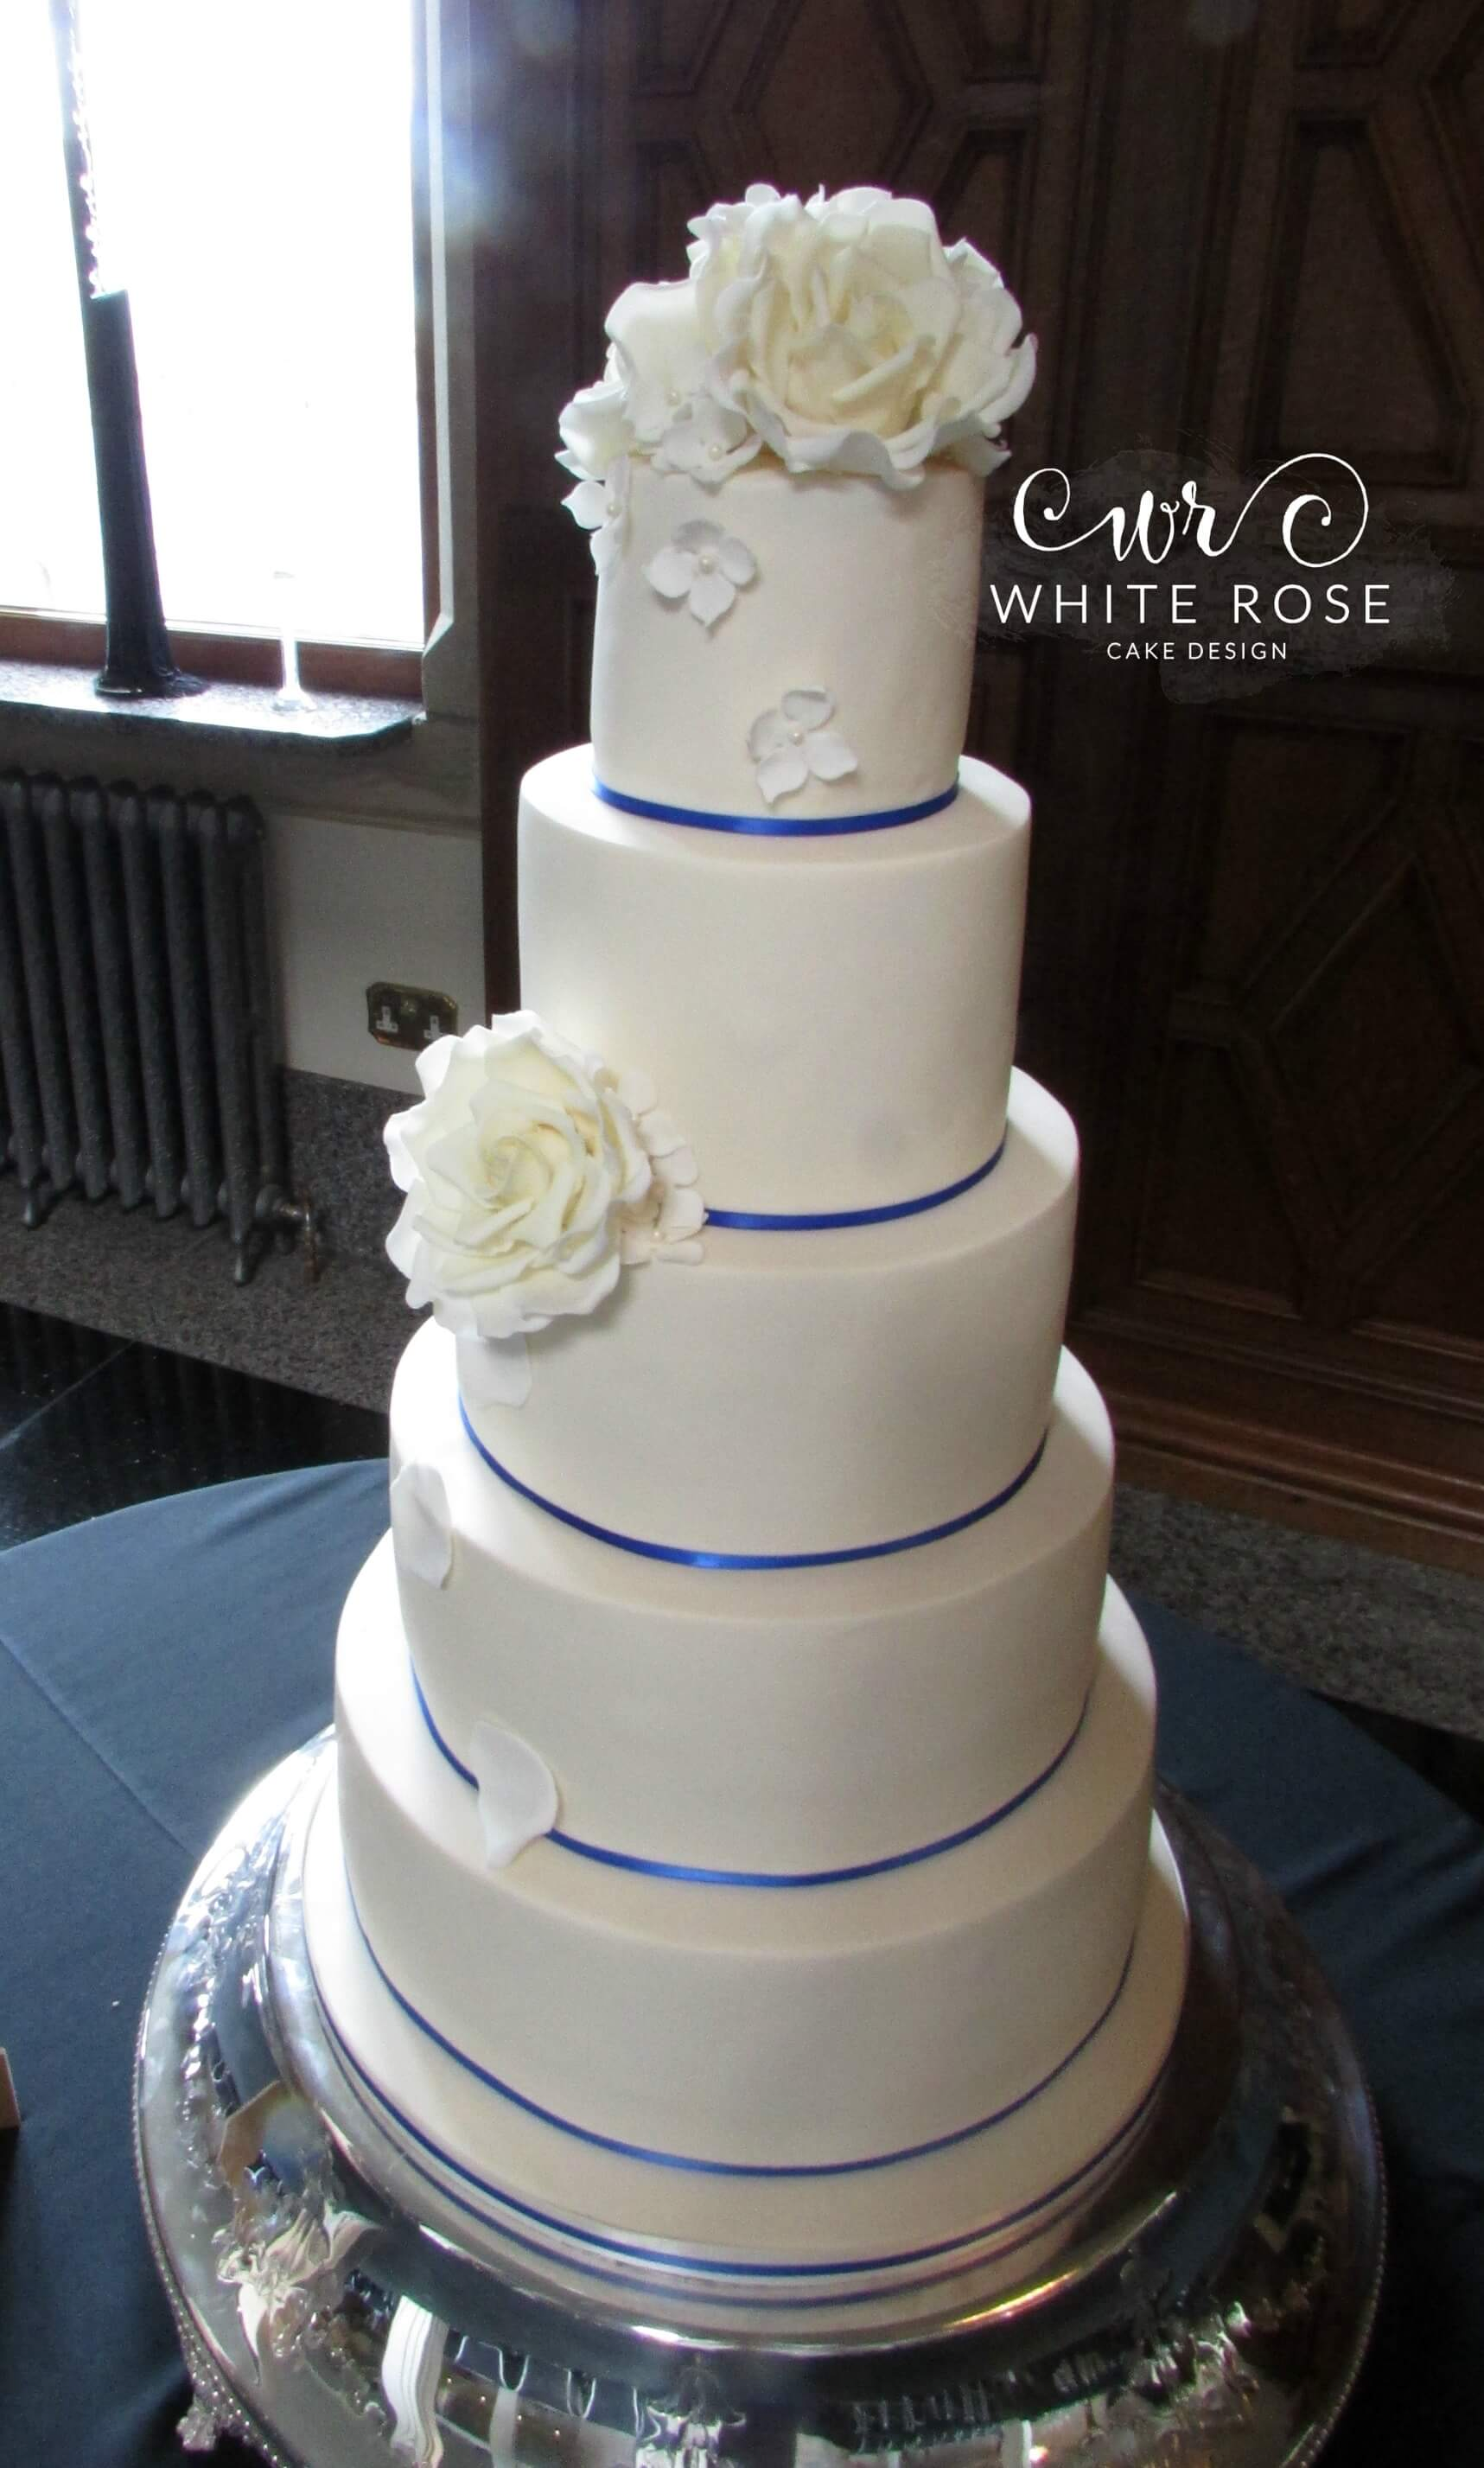 Ivory and Royal Blue Wedding Cake by White Rose Cake Design, Wedding Cakes in West Yorkshire